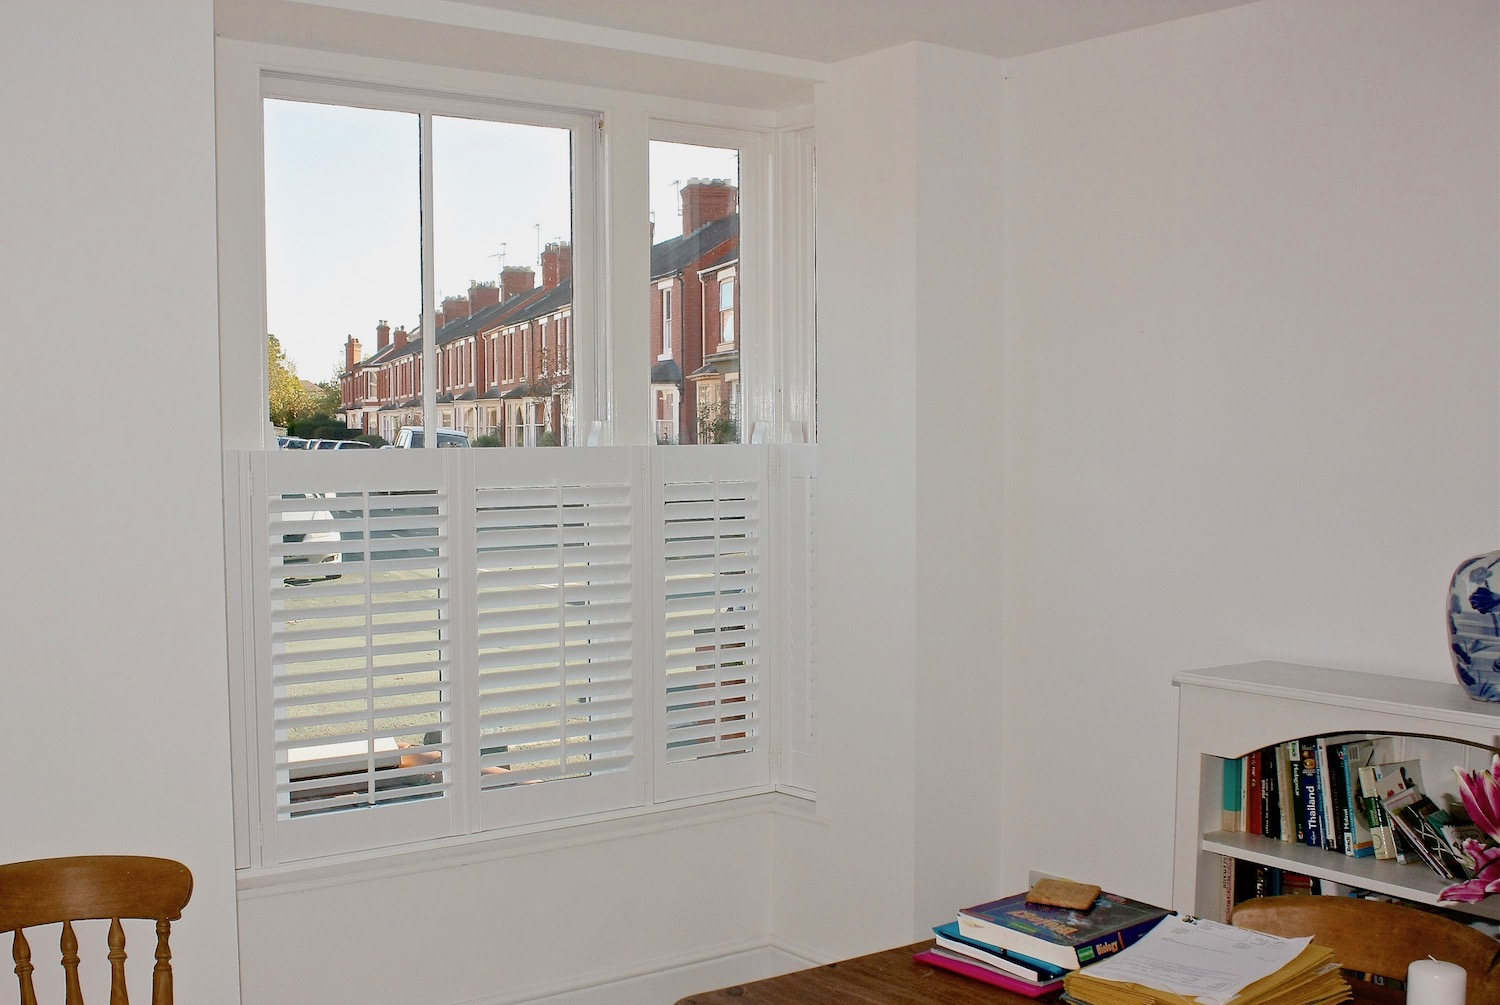 Cafe Style Shutter In a Square Bay Widow